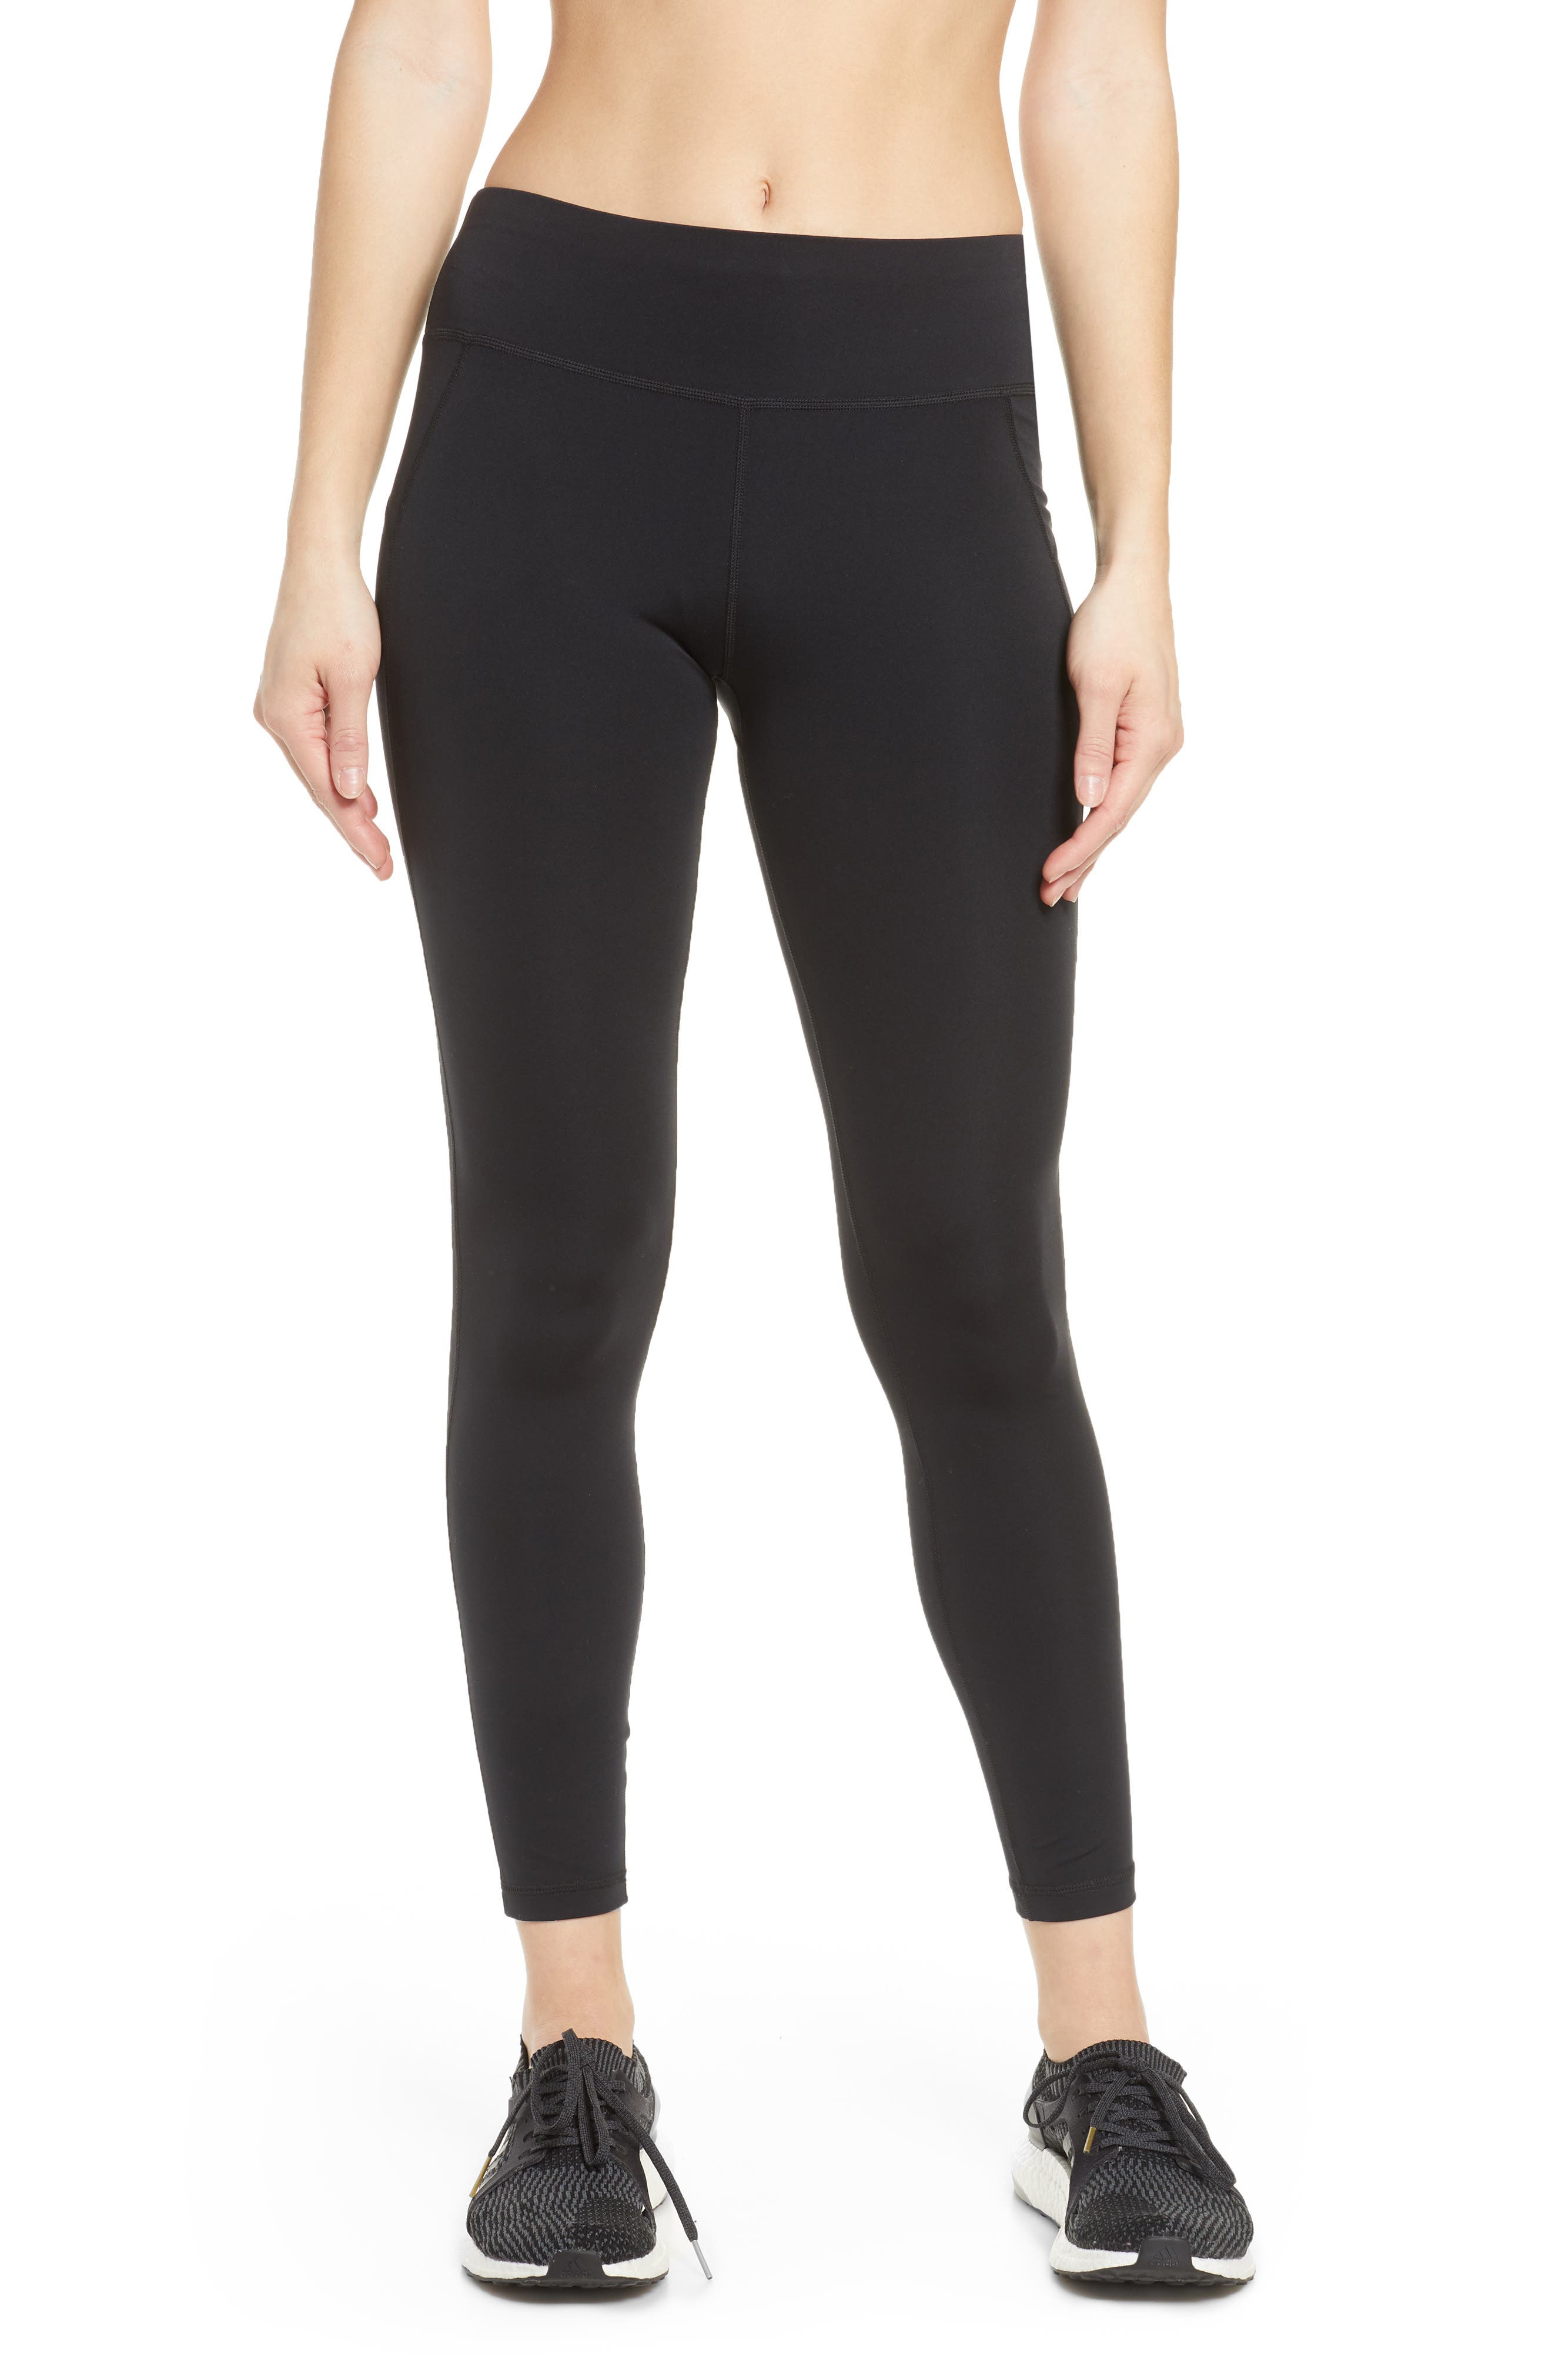 Make these sleek, high-waist leggings with a cool, cropped fit part of your essential workout wardrobe. Style Name: Sweaty Betty Contour Crop Workout Leggings. Style Number: 6019028. Available in stores.